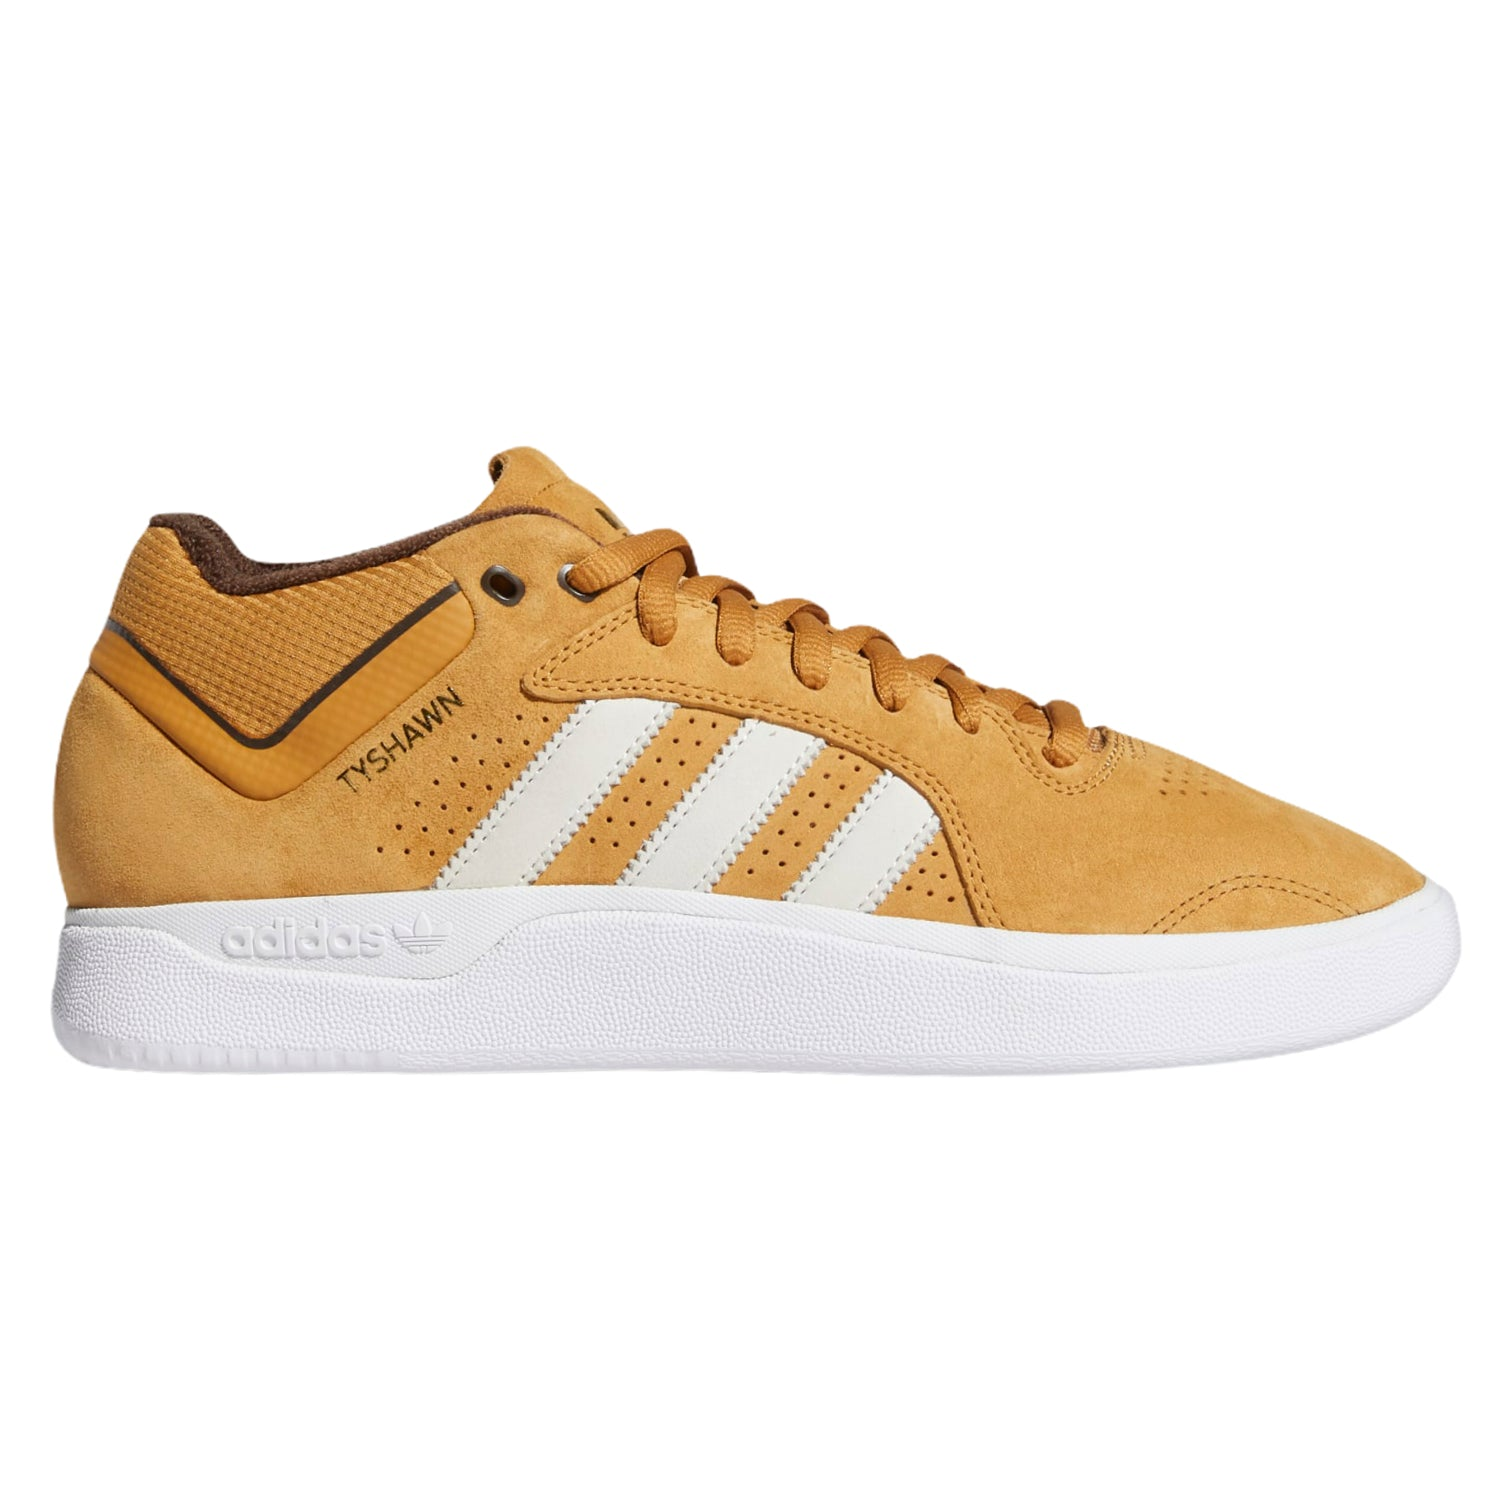 Adidas Tyshawn Pro Model Mesa/Chalk White/Dark Brown